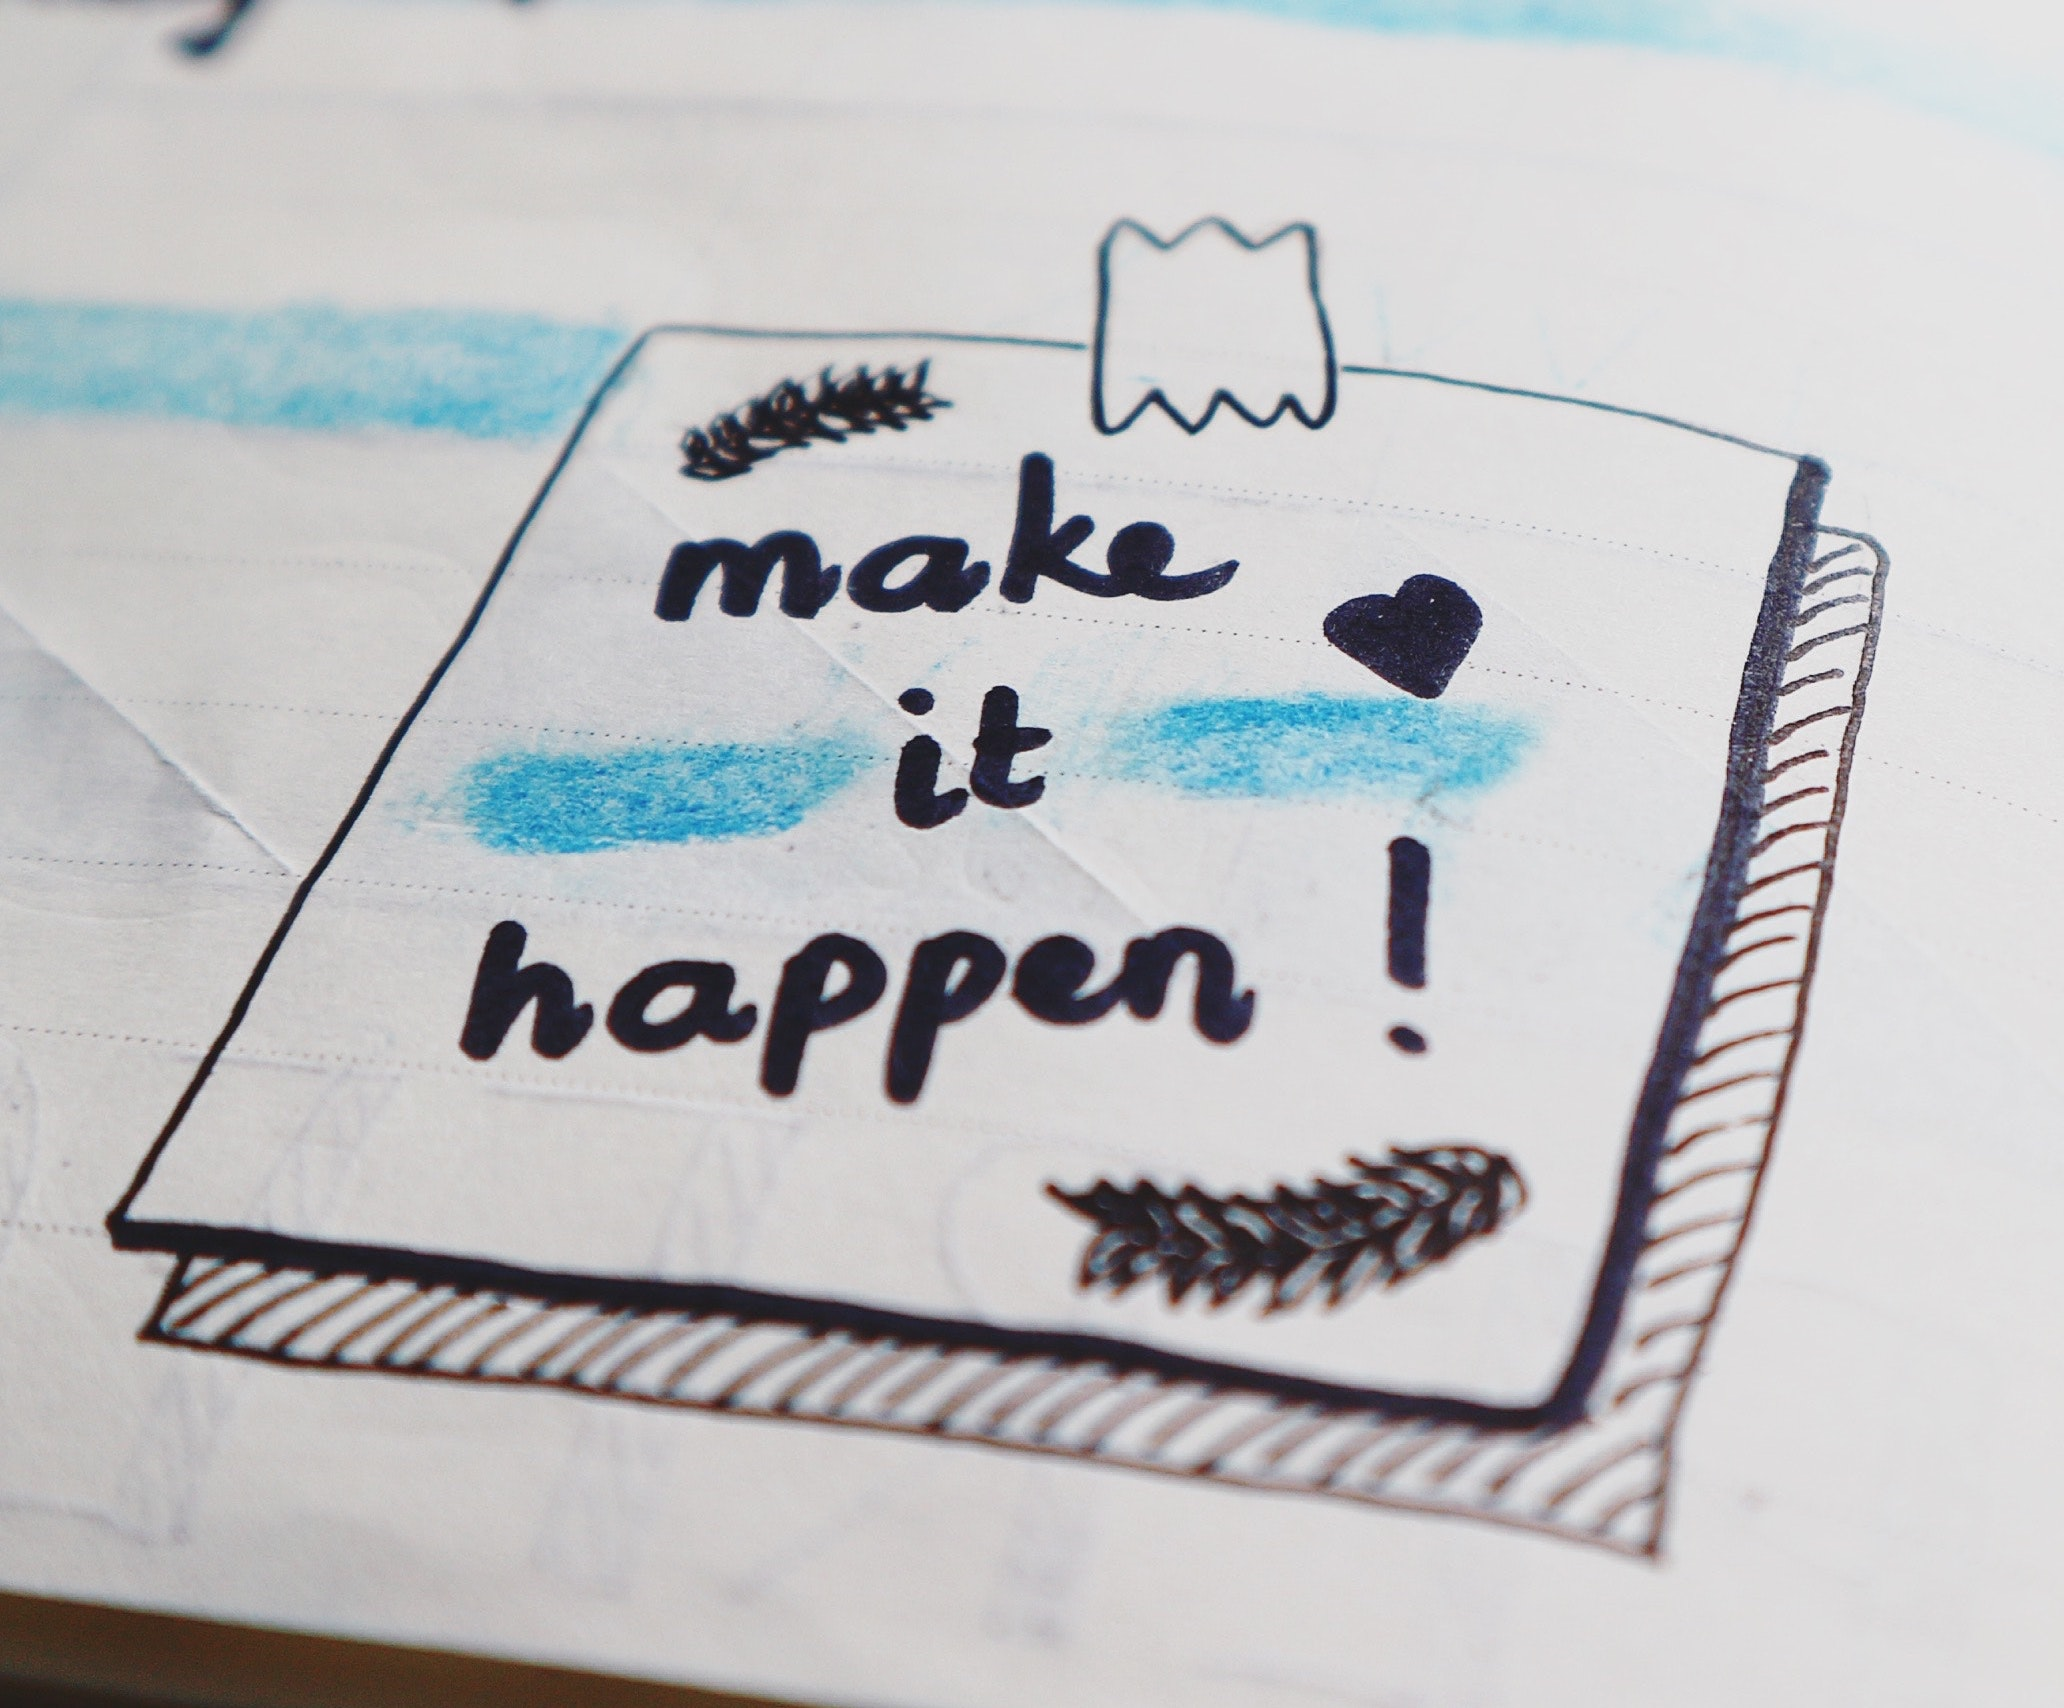 Don't let college planning fall apart - make it happen